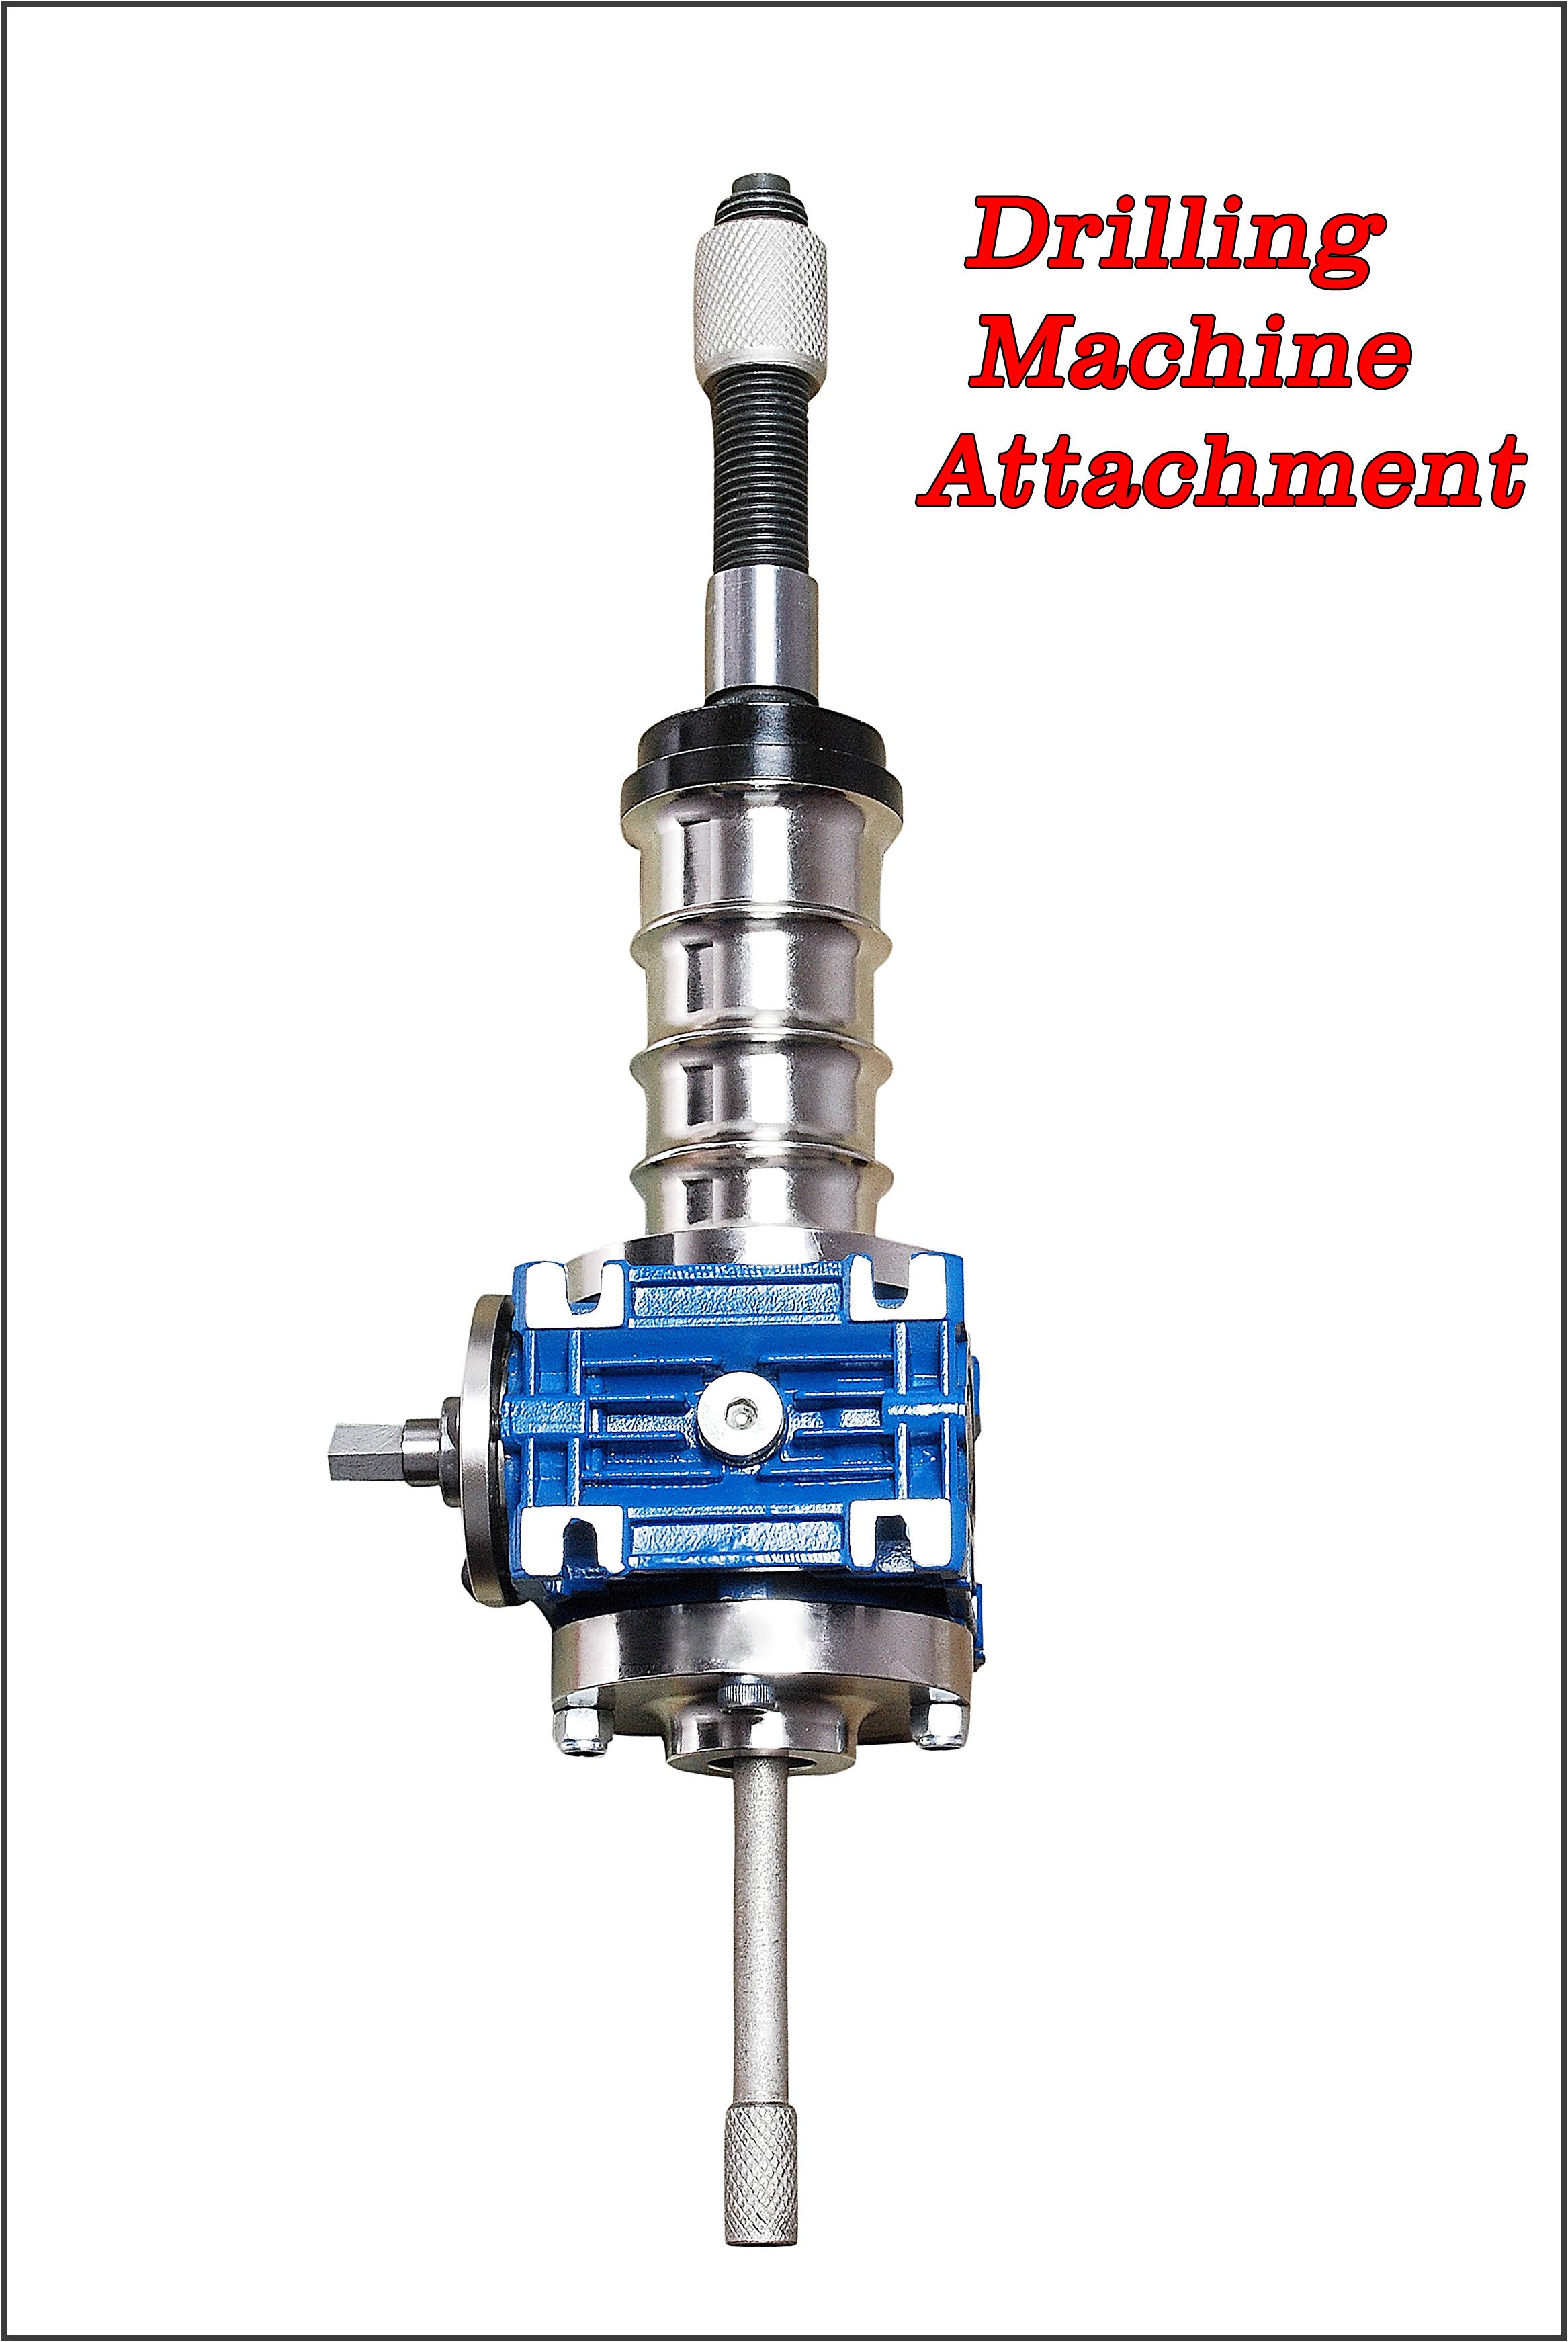 Drilling Machine Attachments For Knockout Punches - Simplex